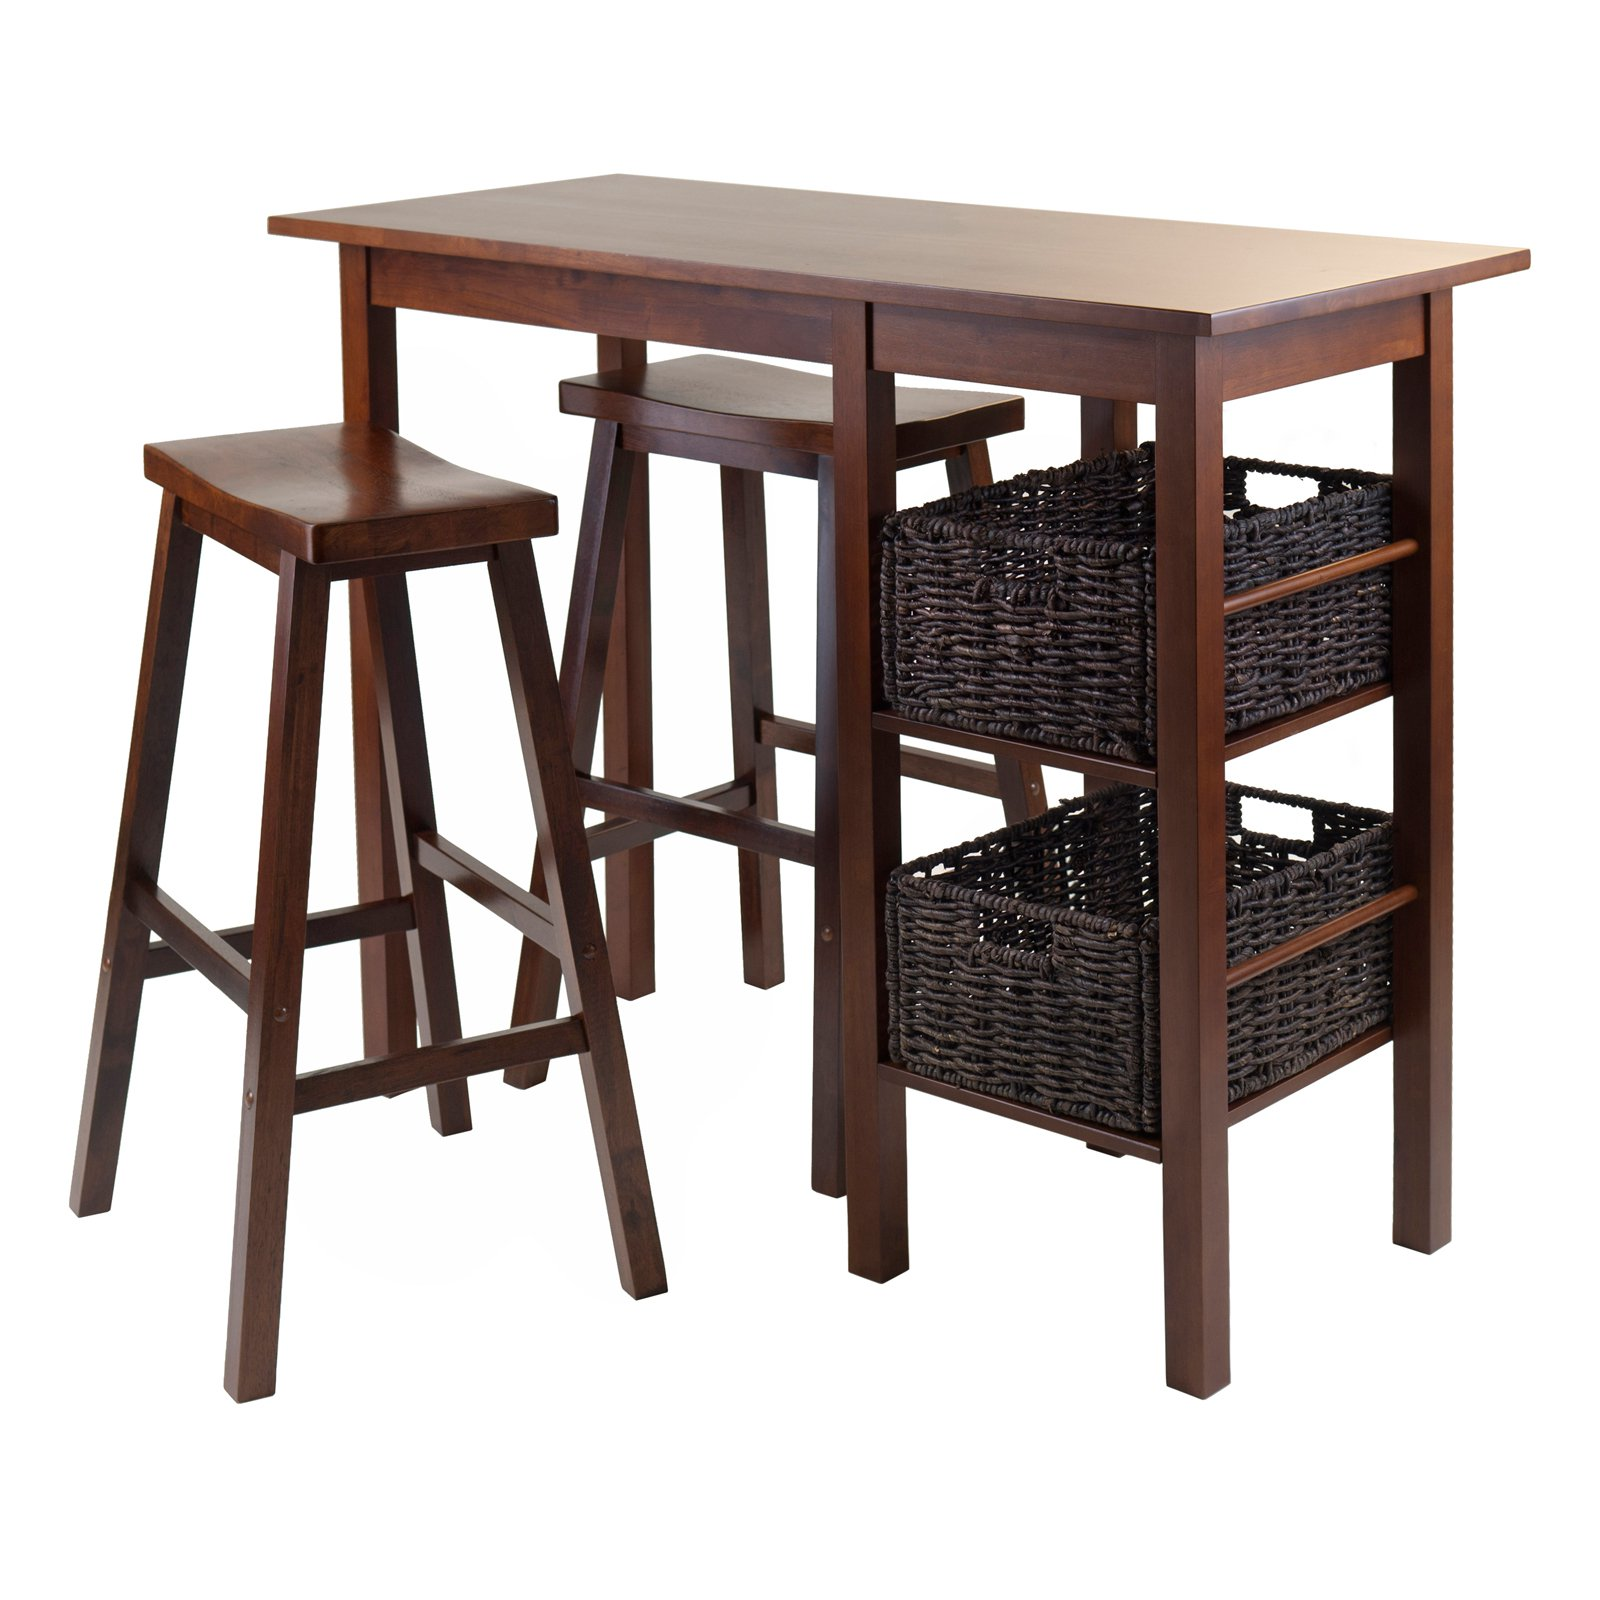 Winsome Wood Egan 5pc Table w/ Saddle Seat Bar Stools and 2 Baskets